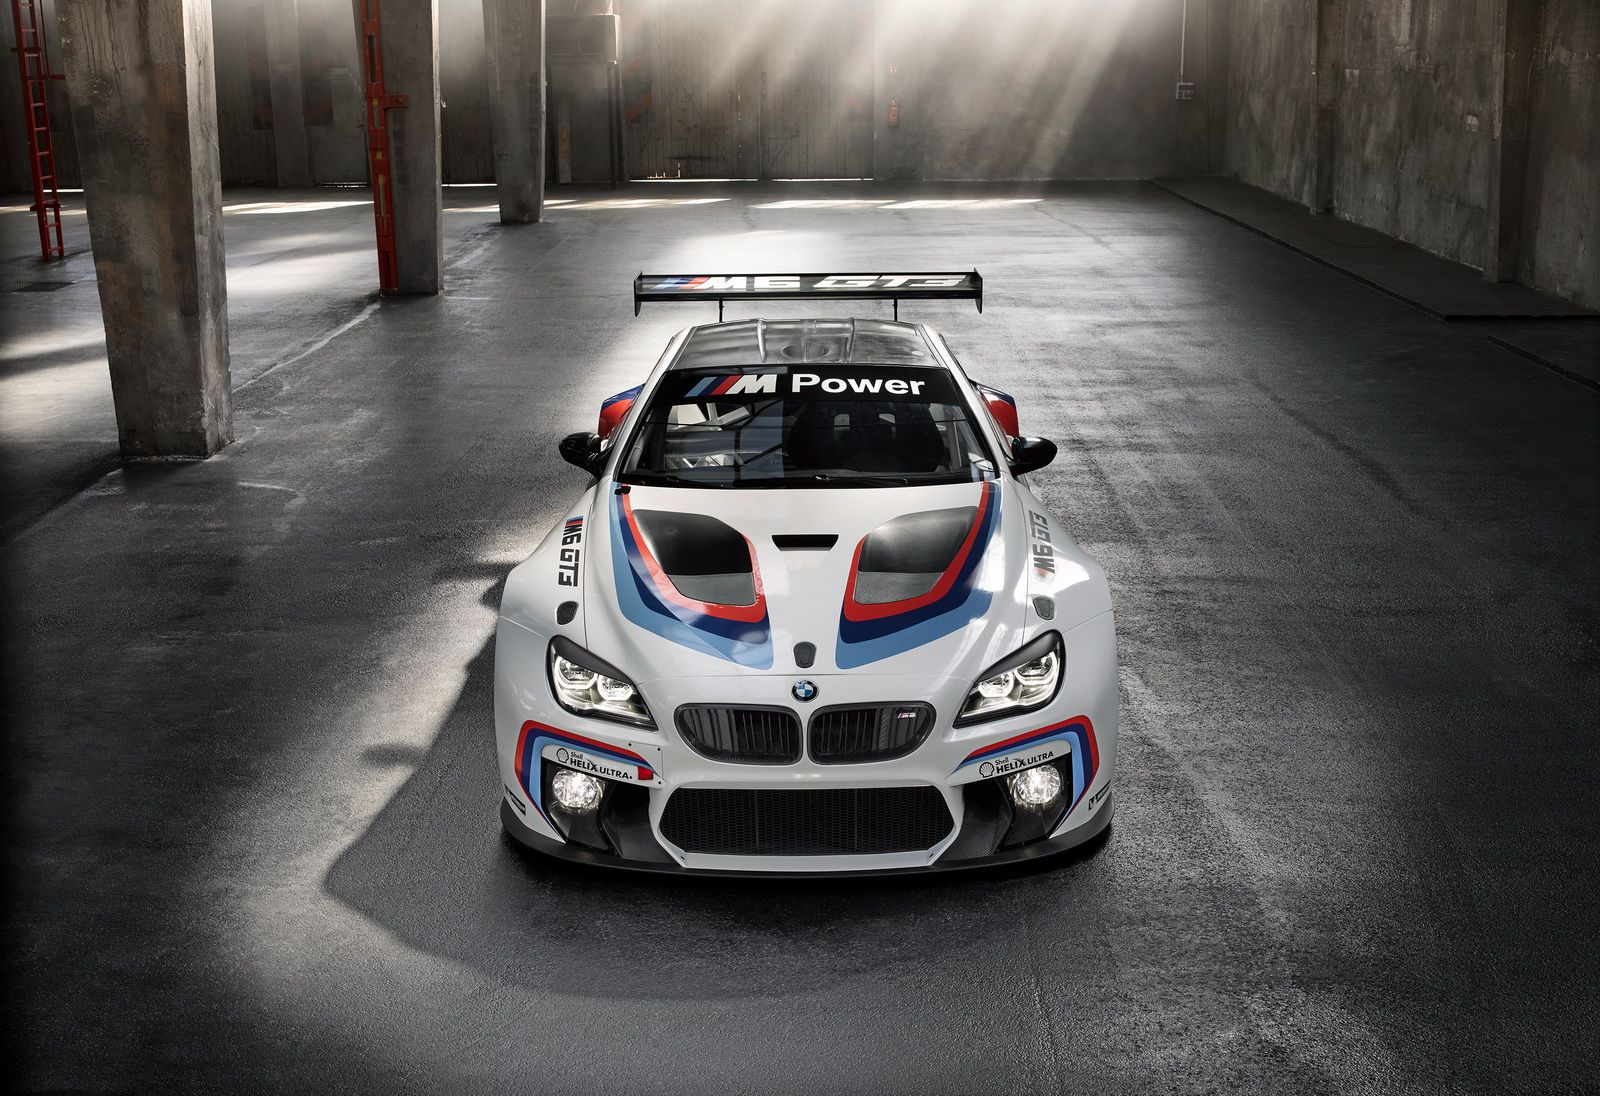 Bmw M6 Gt3 Finally Shows Its Racing Colors Barvy A Historie